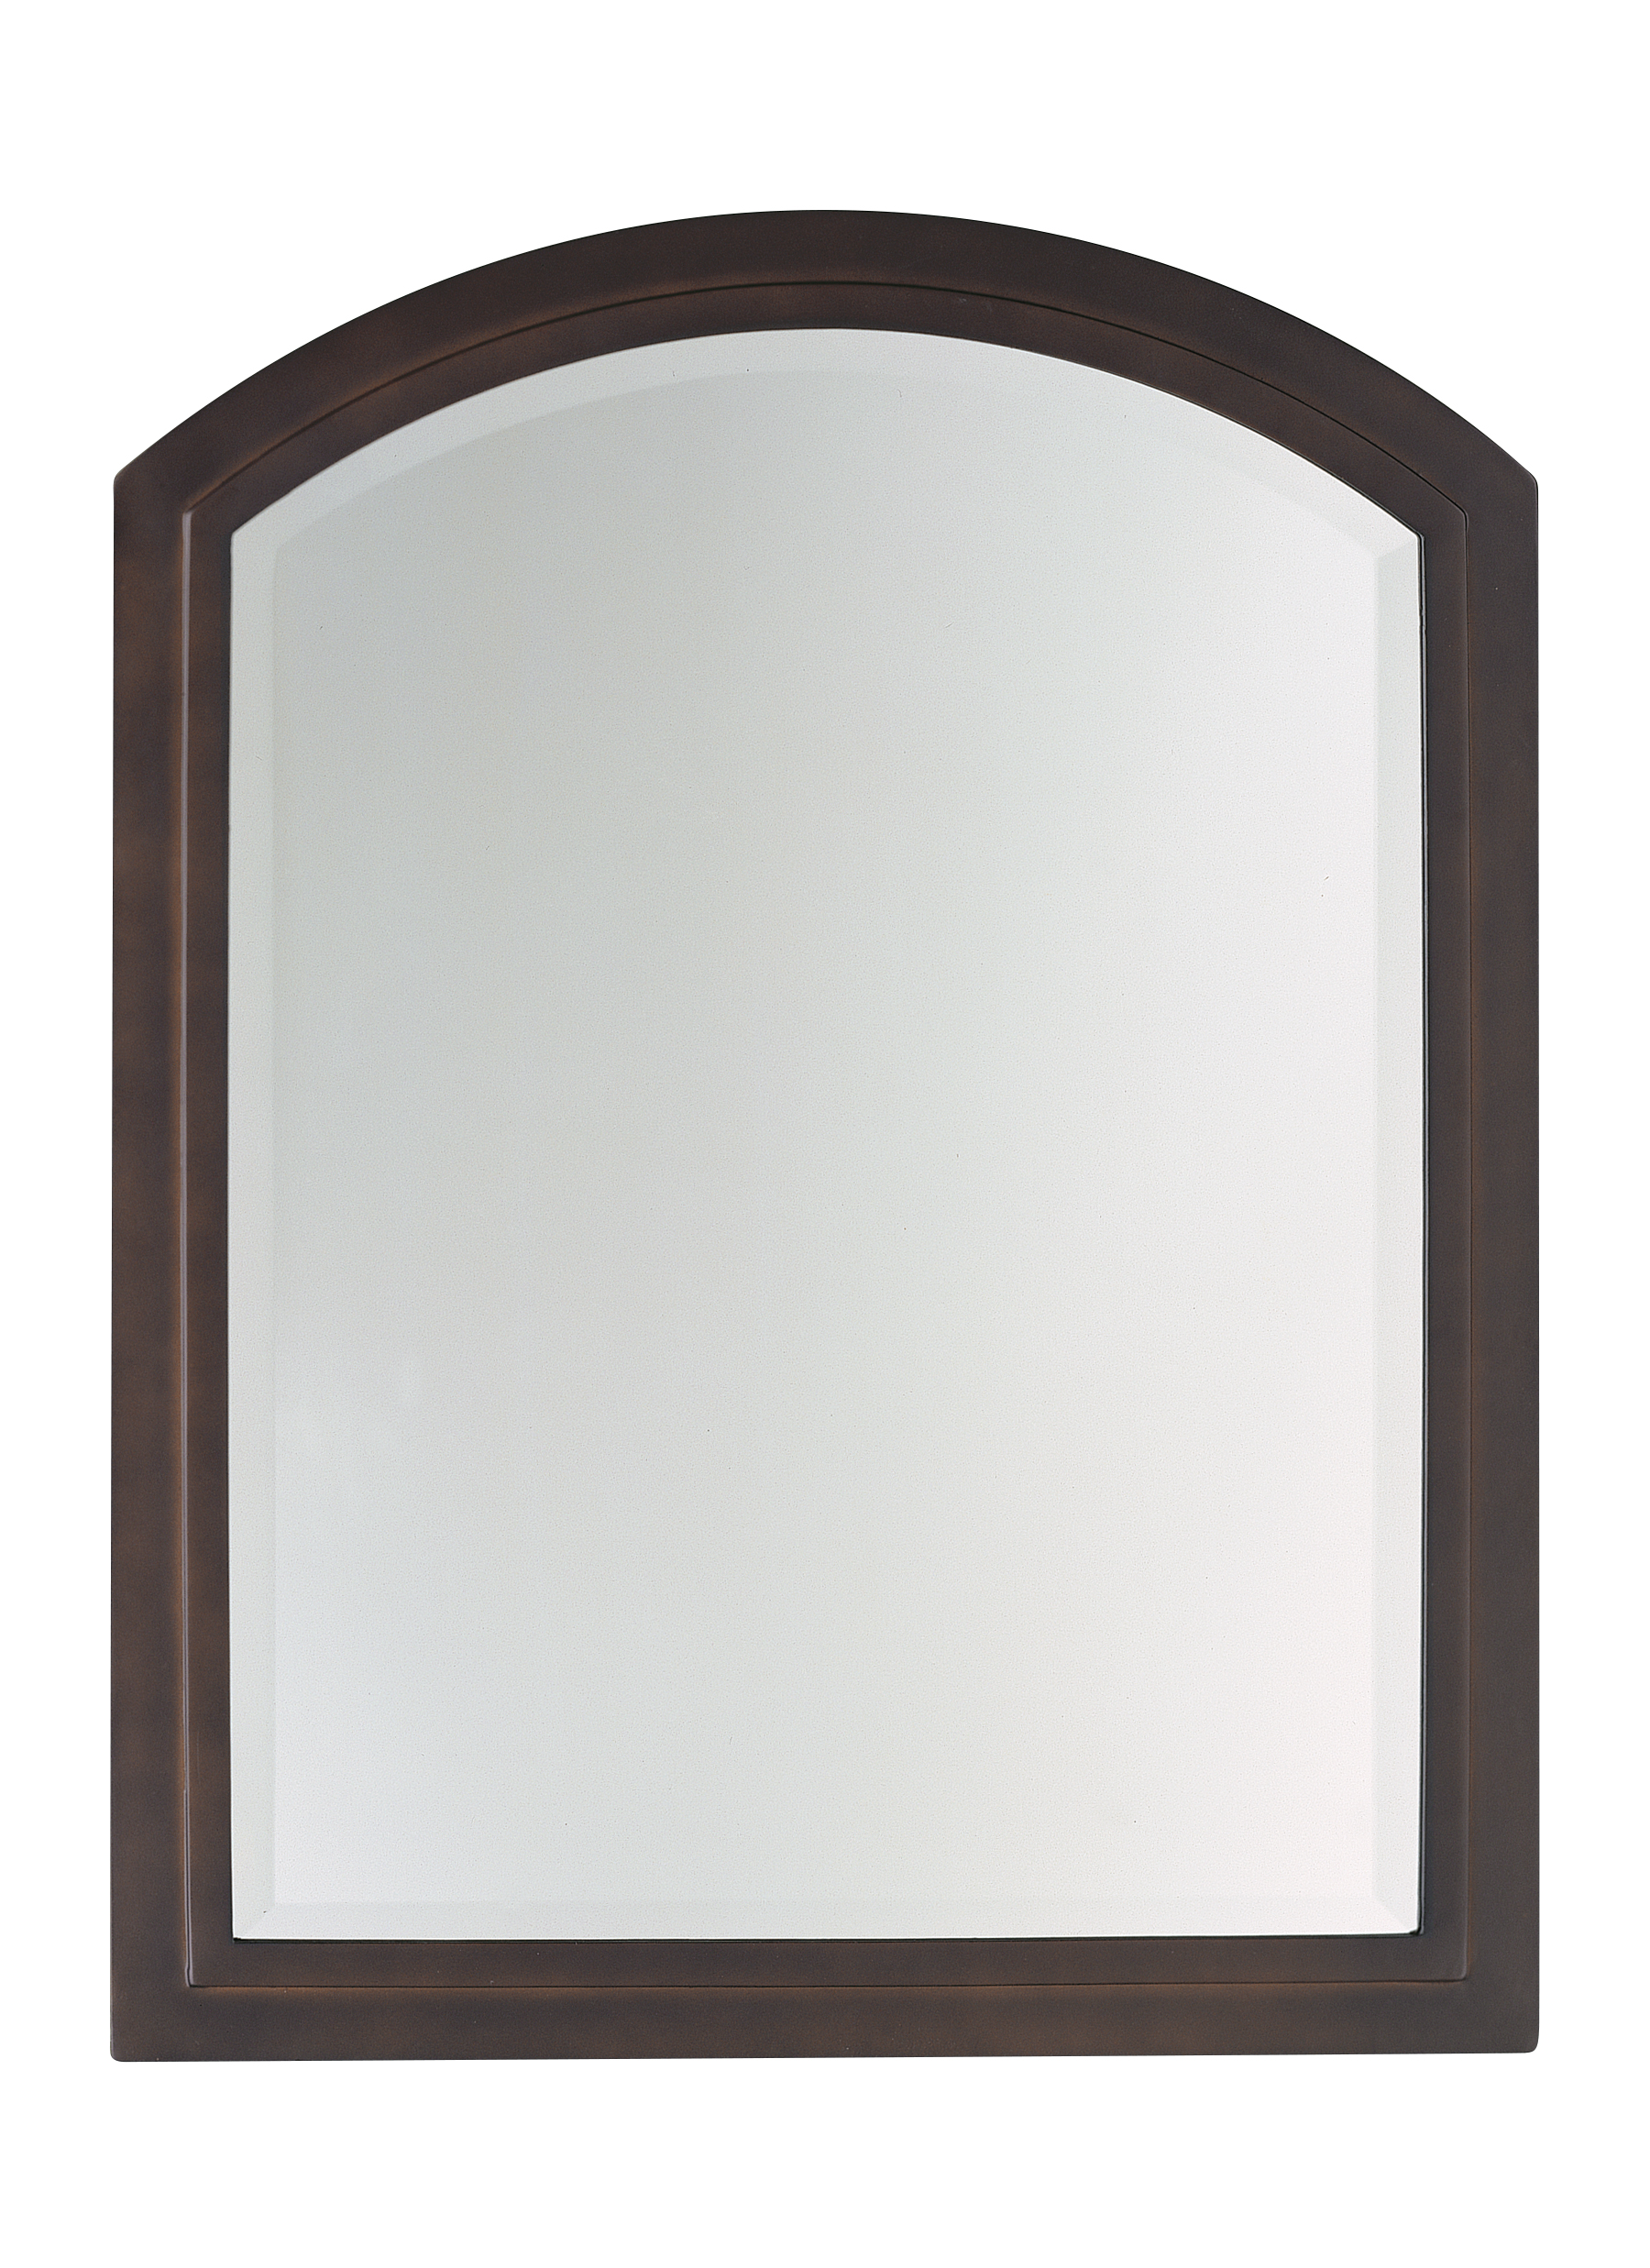 Mr1042orb Oil Rubbed Bronze Mirror